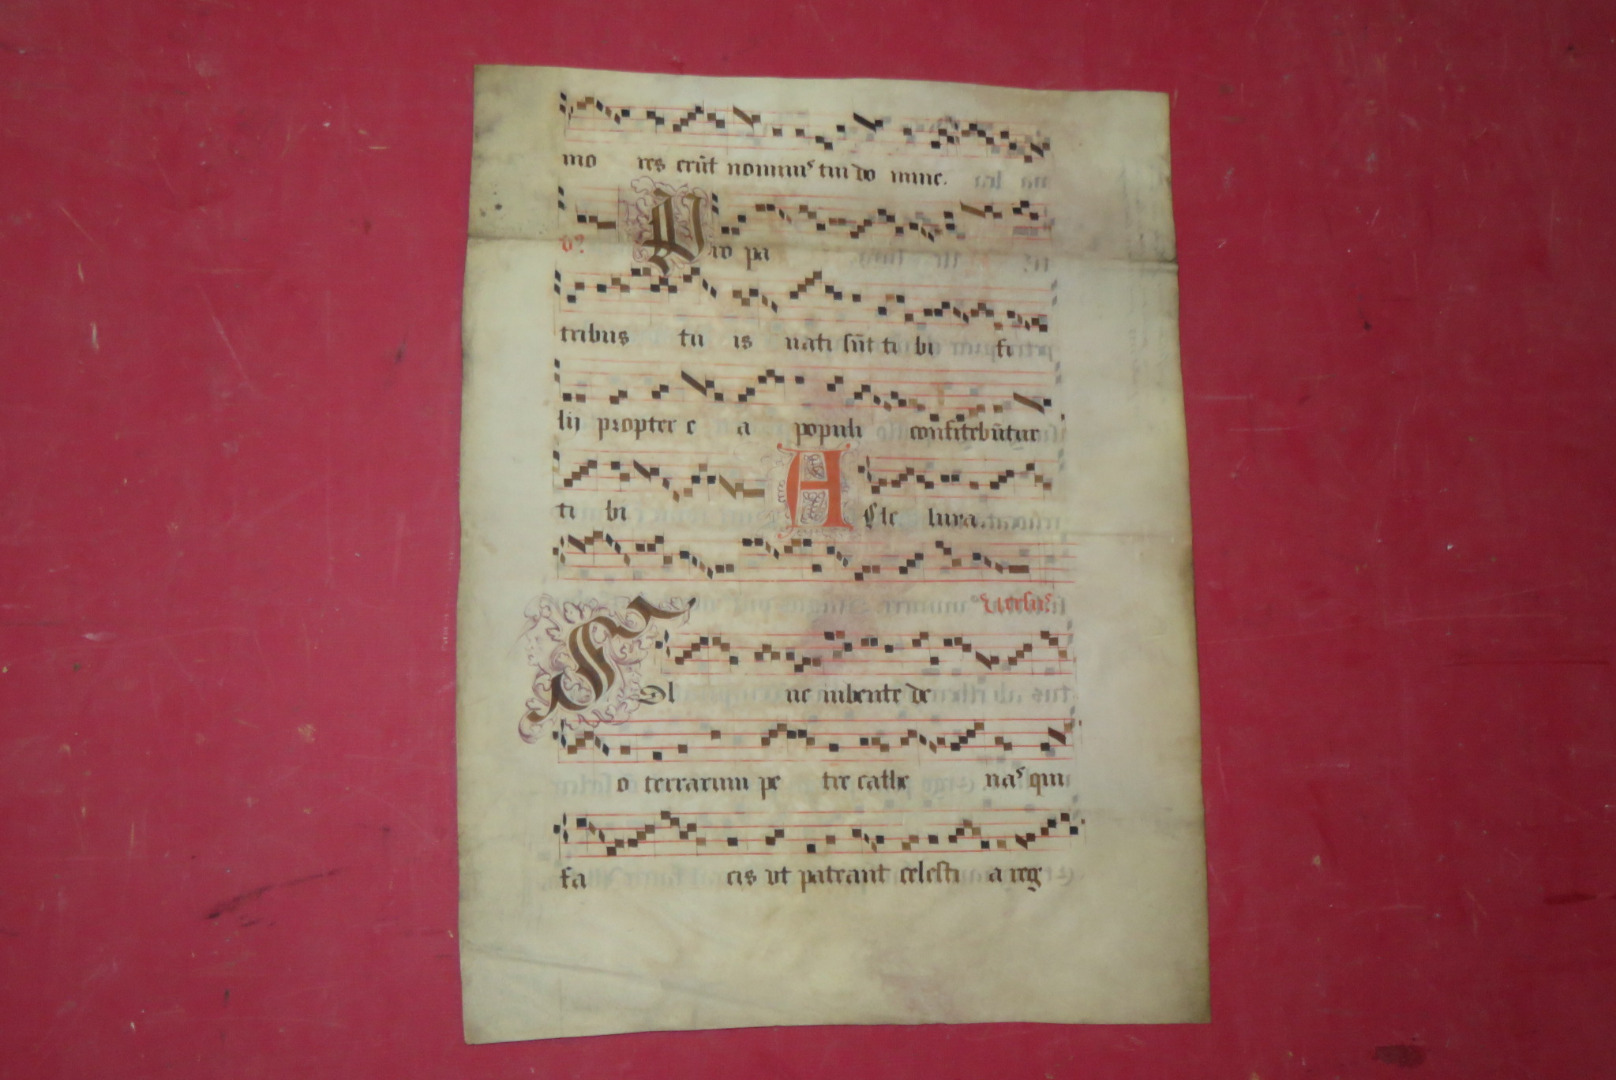 17th CENTURY ANTIPHONARY PAGE